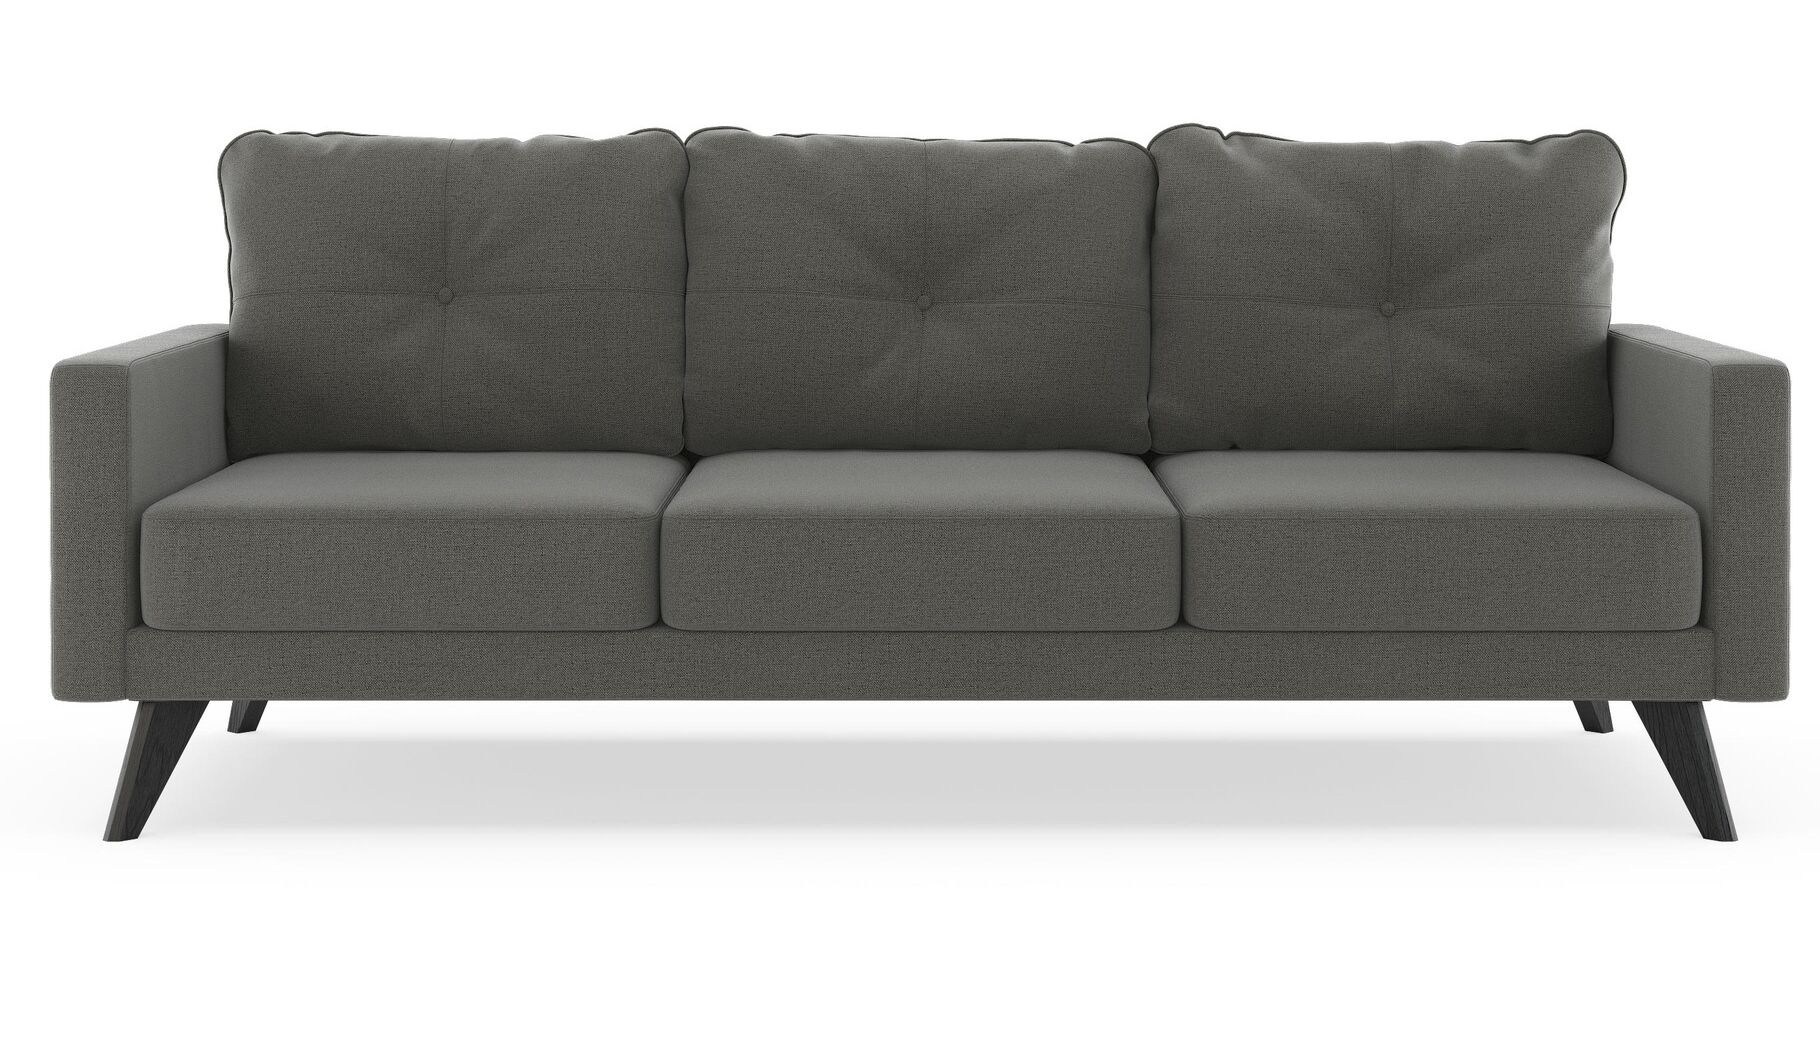 Coyer Oxford Weave Sofa Upholstery: Aegean Blue, Finish: Black